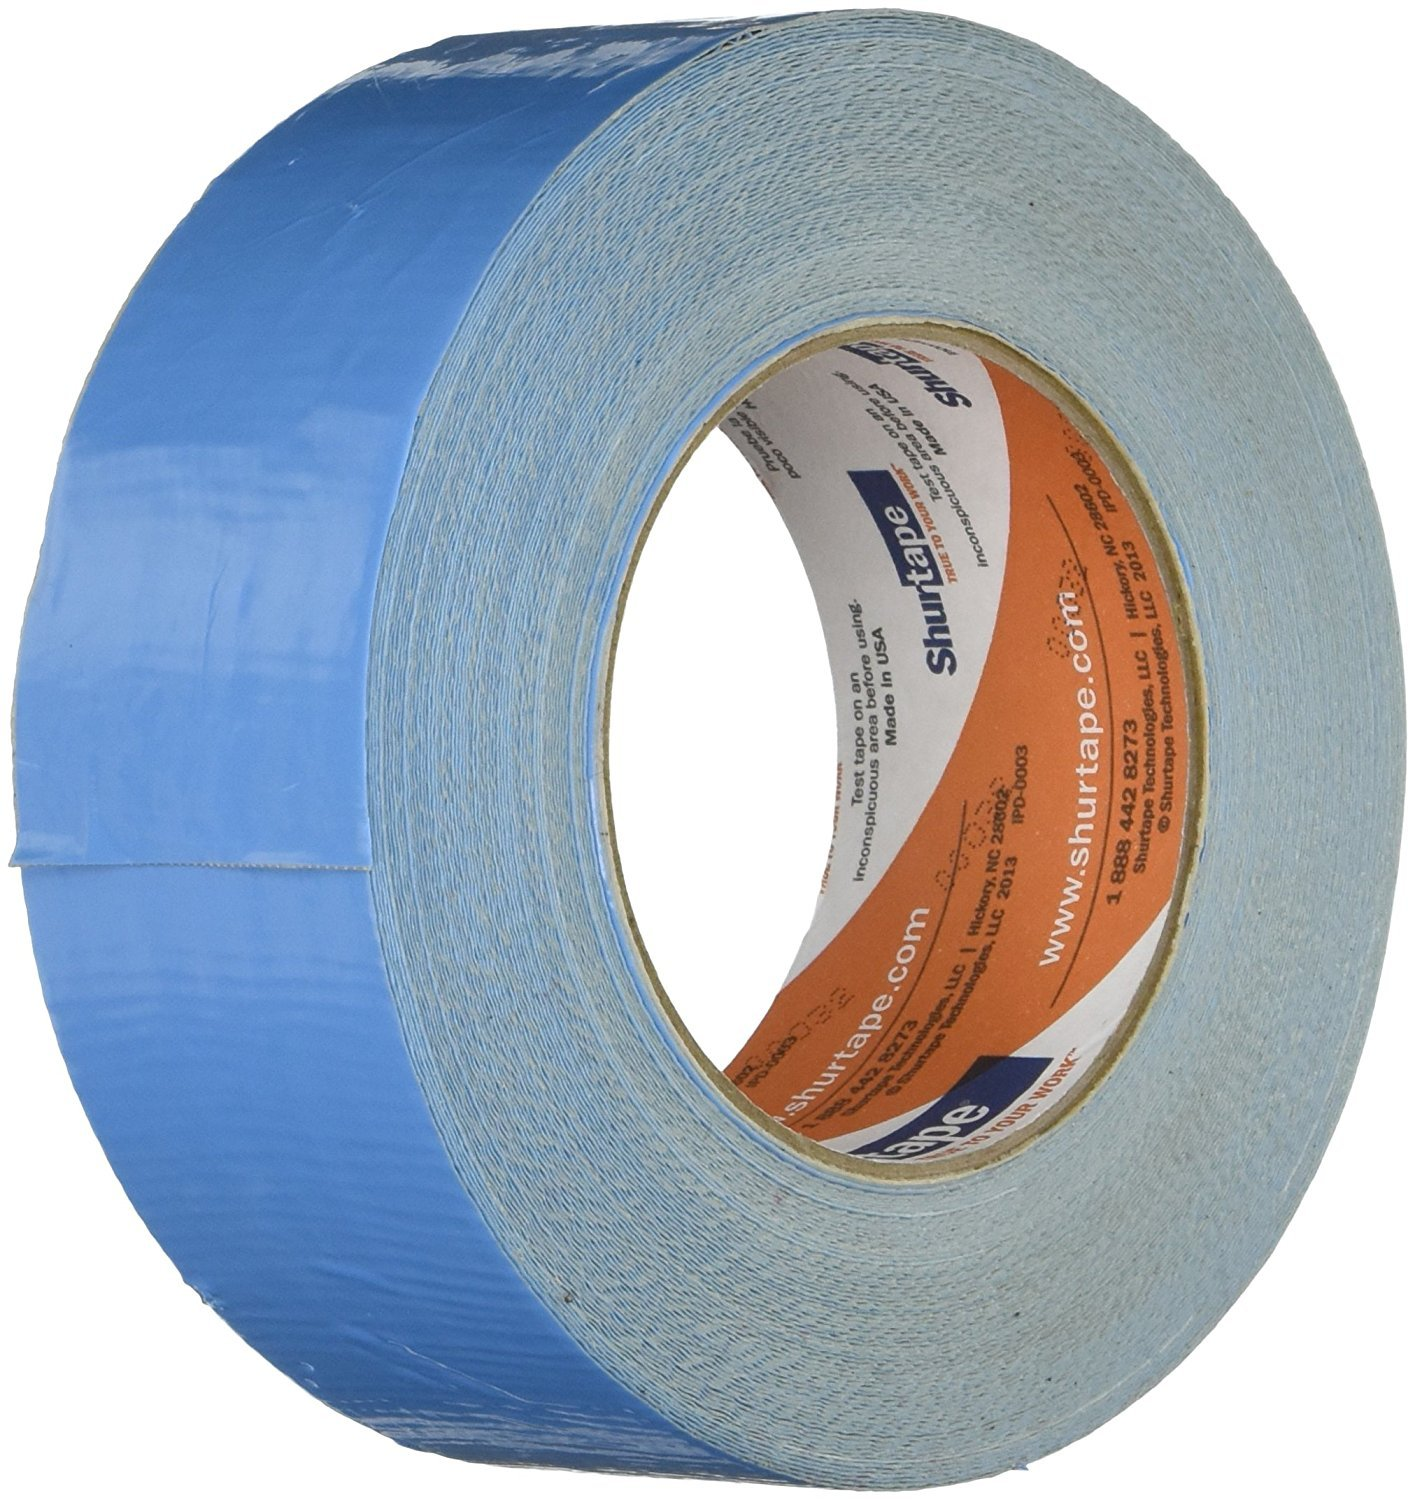 Shurtape DF-545/NAT225 DF-545 Double Coated Cloth Carpet Tape: 2'' x 75 ft, Natural